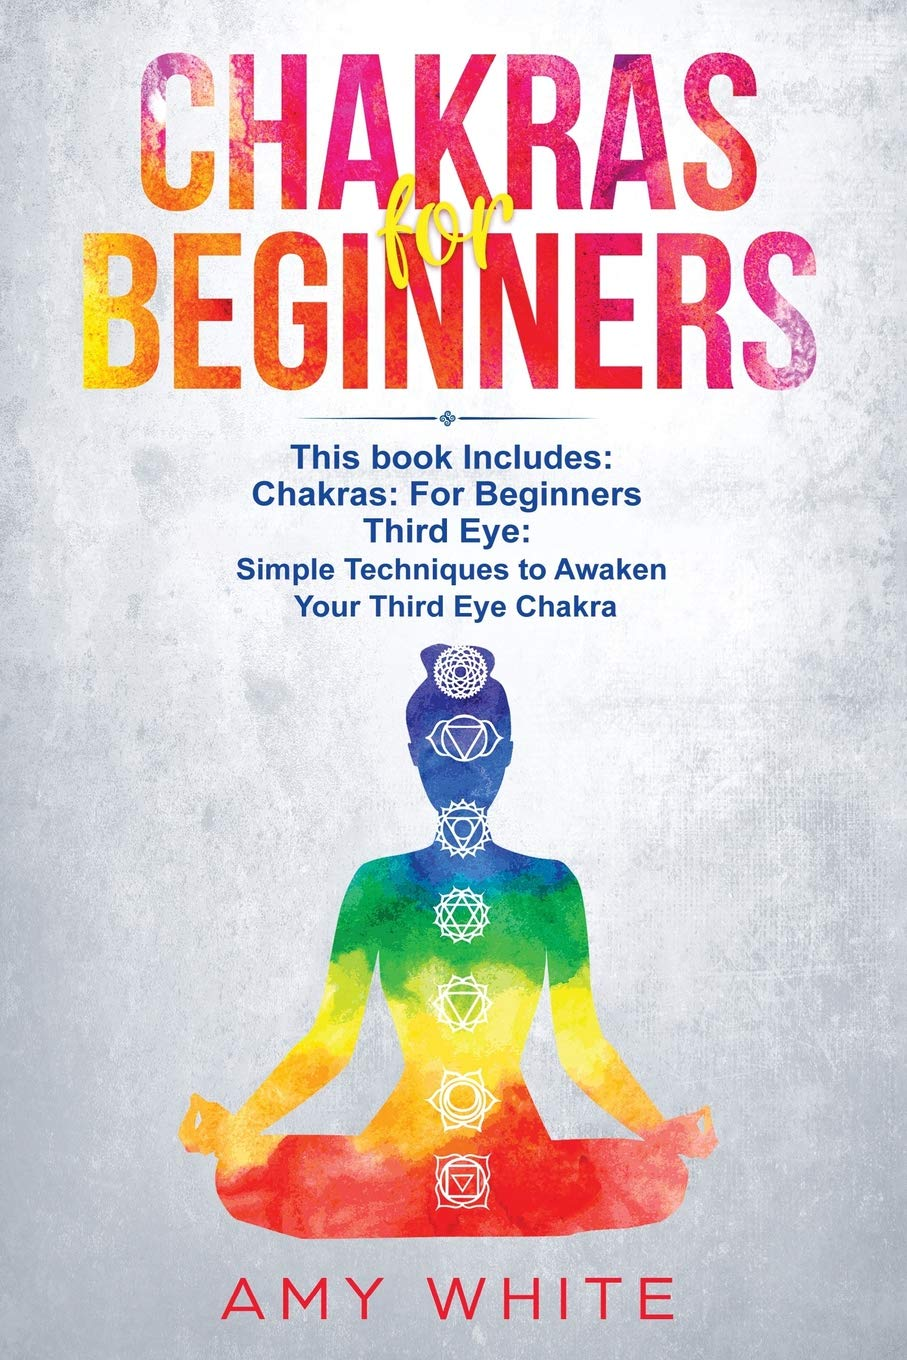 Chakras: & The Third Eye - How to Balance Your Chakras and